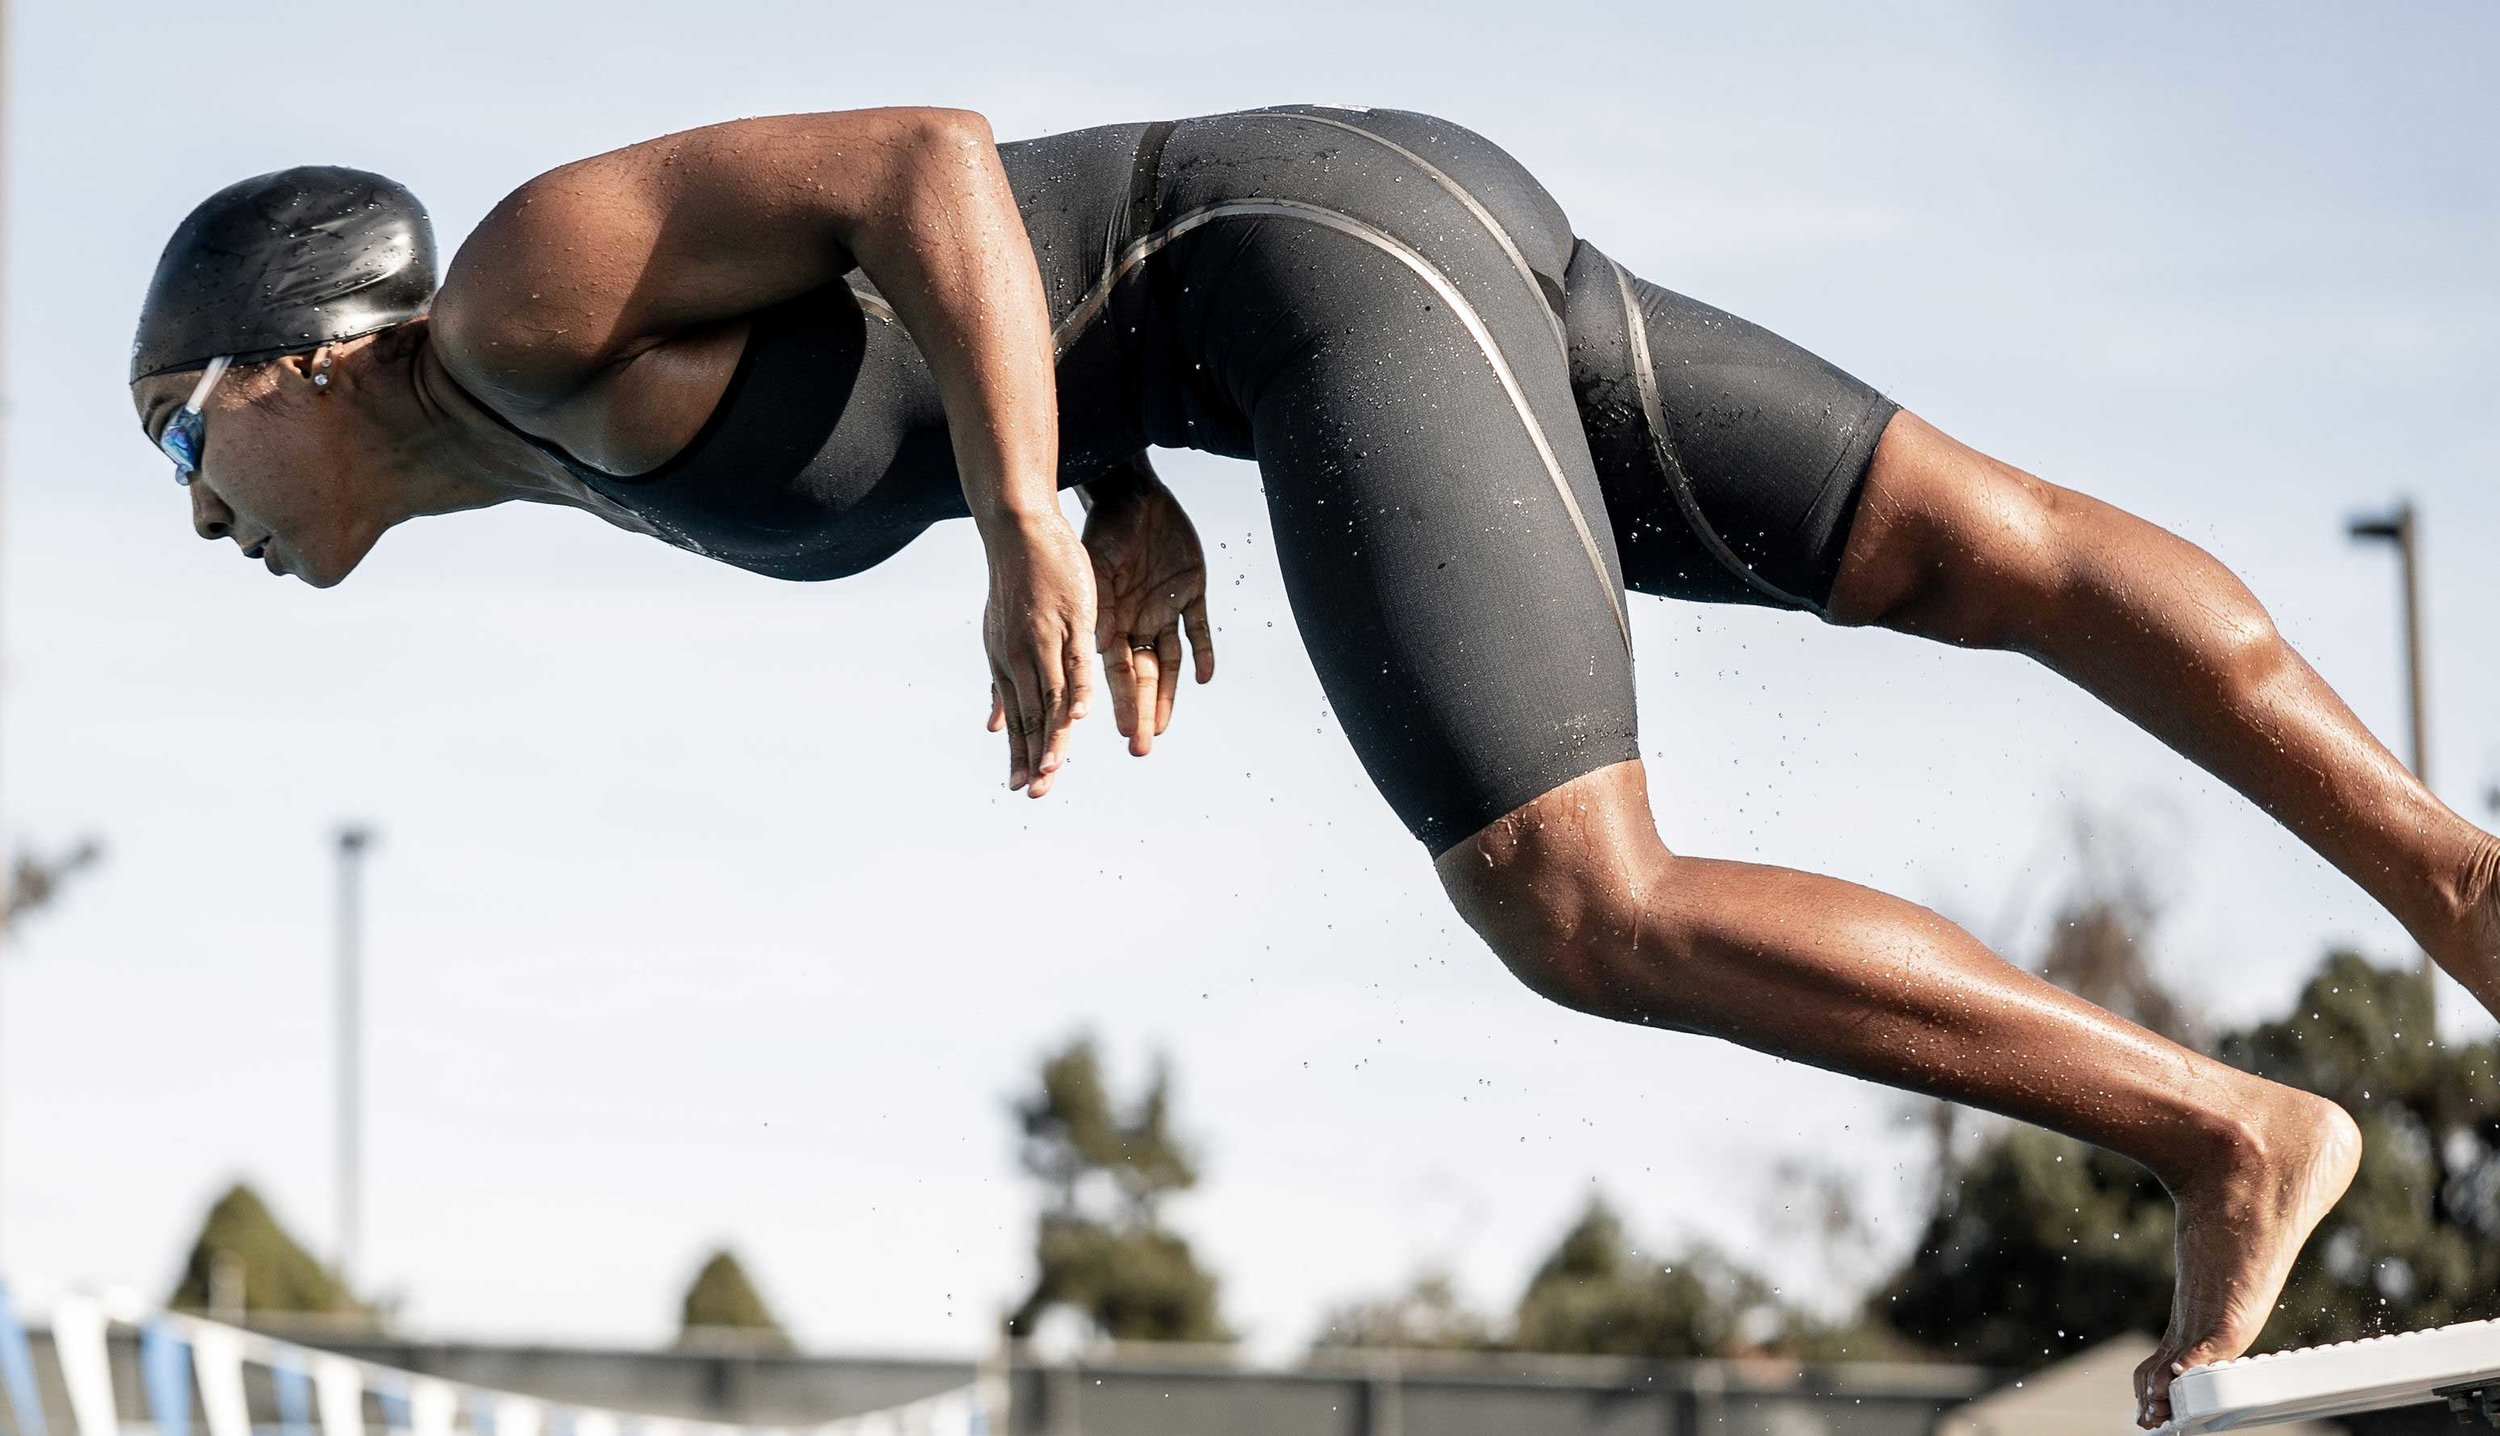 New Family - Lia Neal joins Team Finis